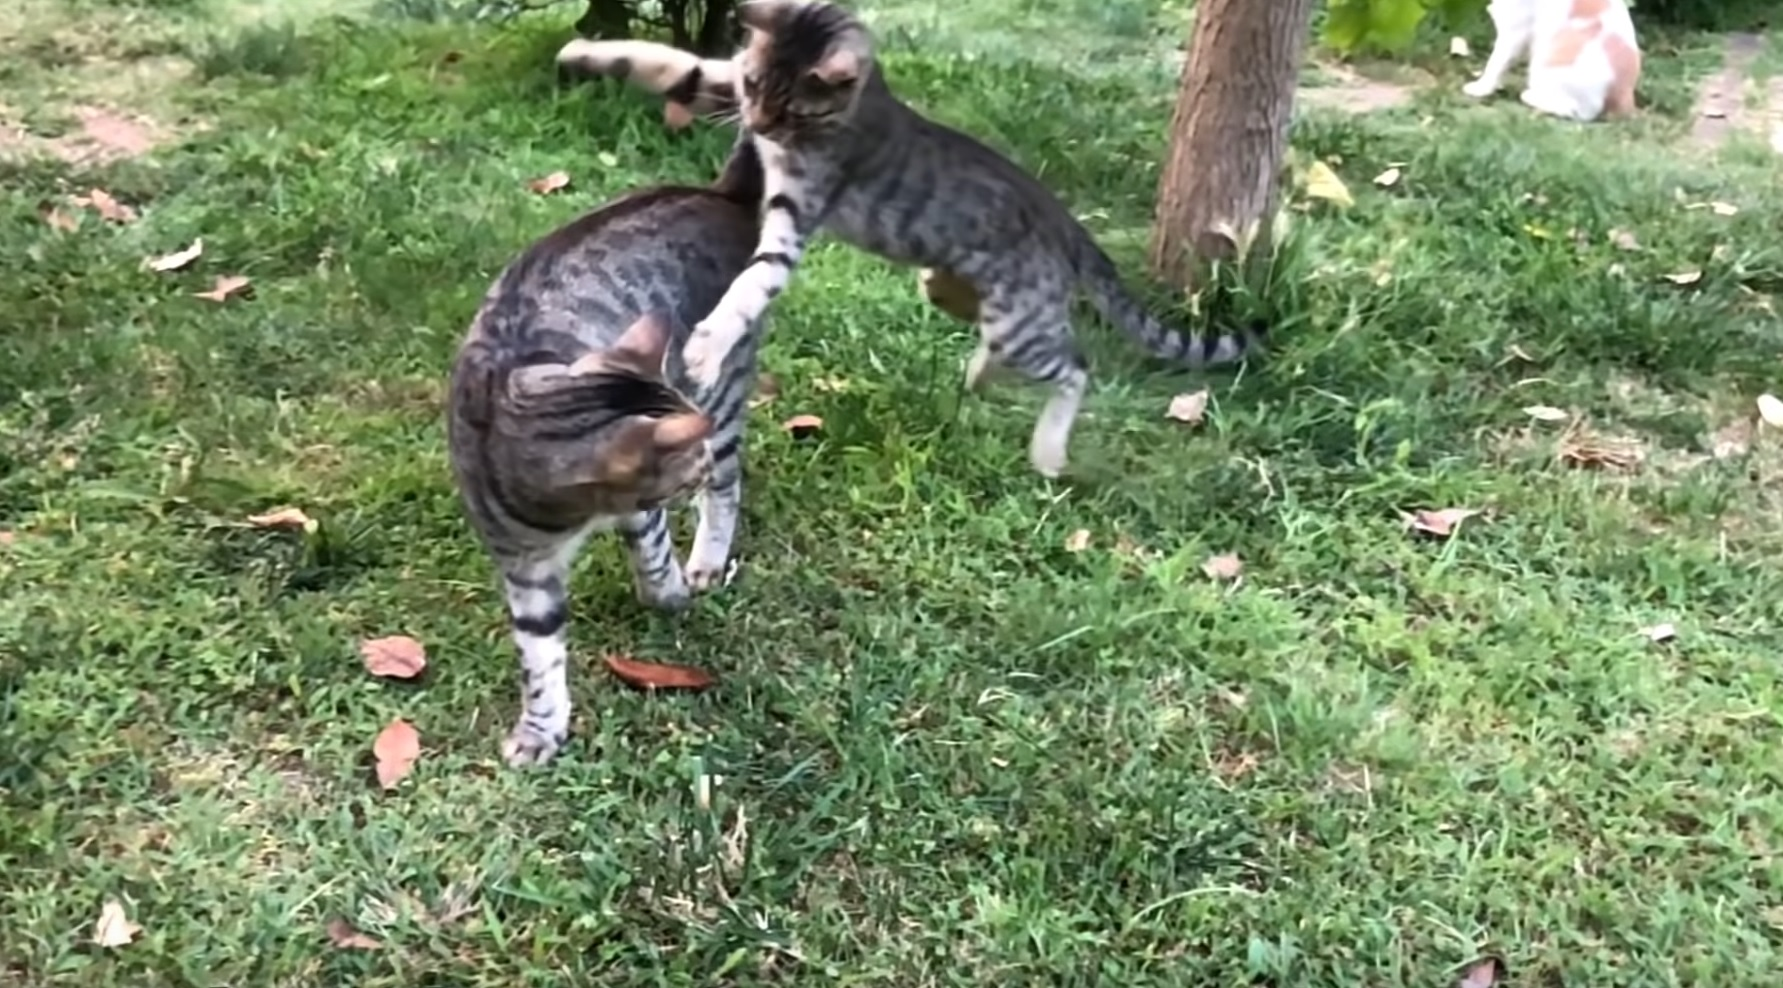 Kitty Finds New Best Friend